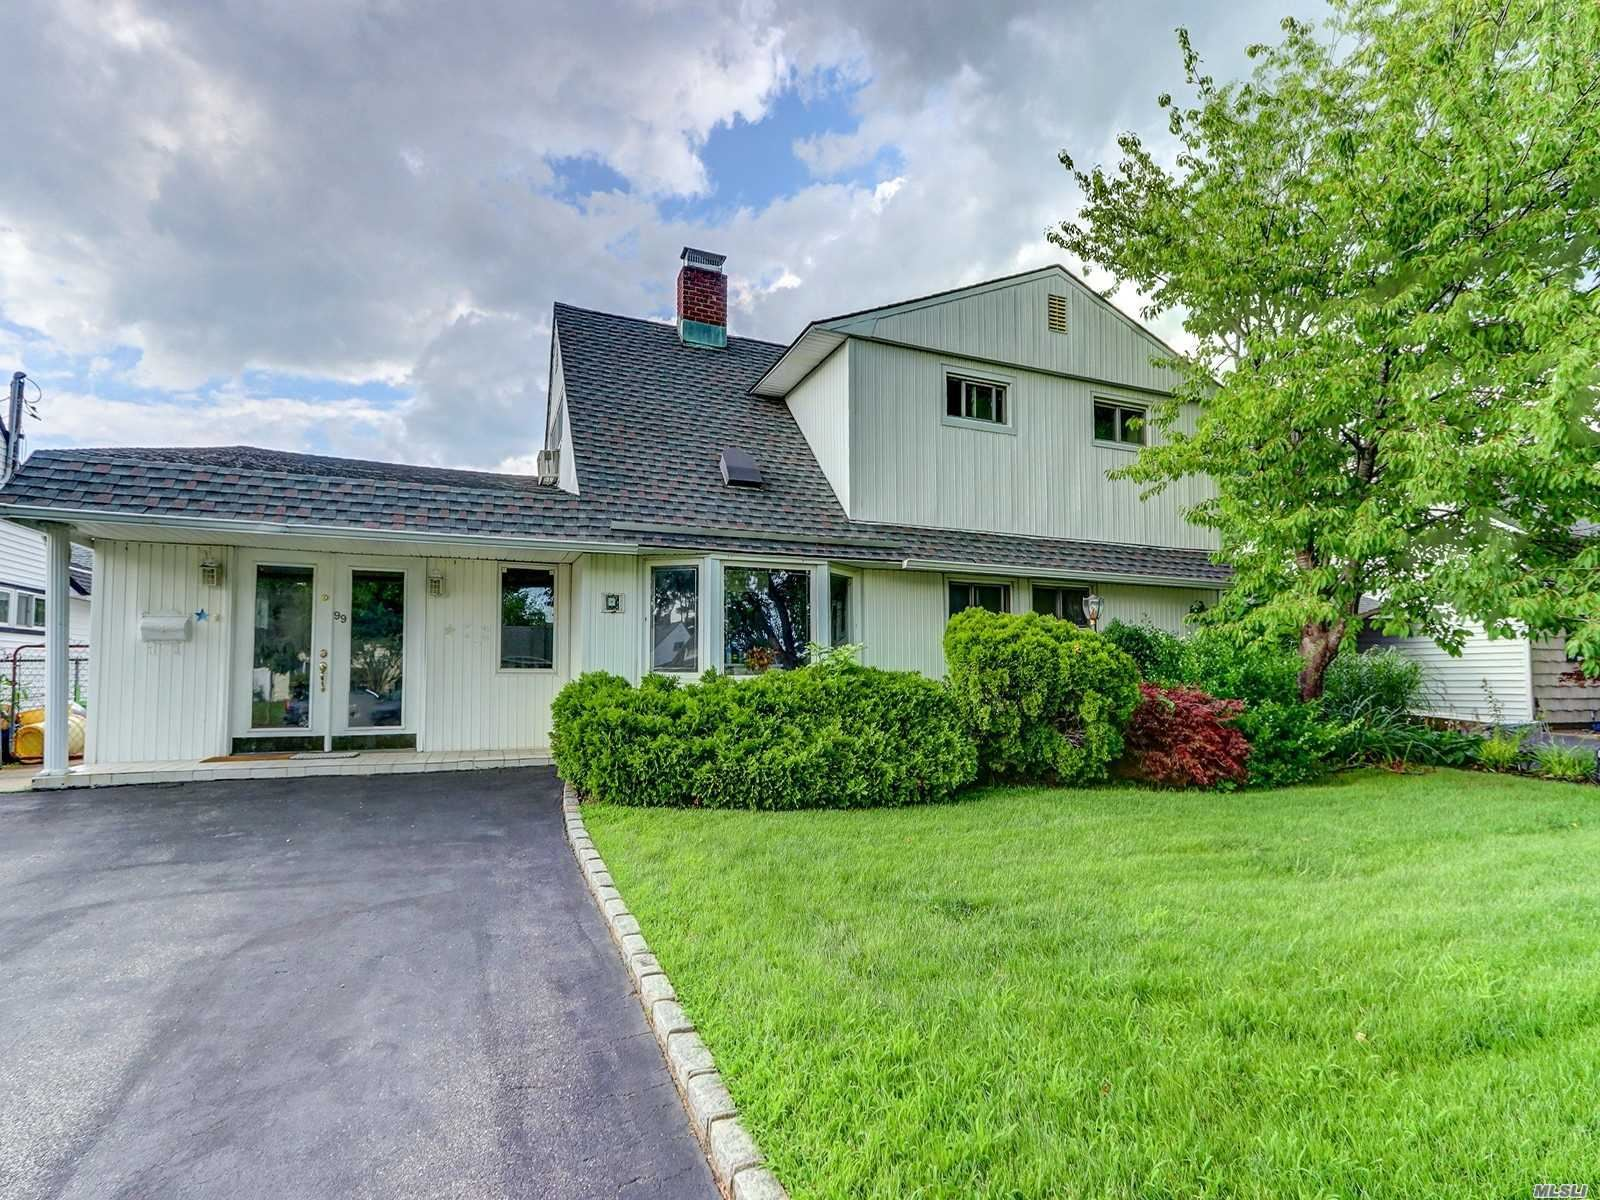 99 Spindle Road, Hicksville, NY 11801 - MLS#: 3236108